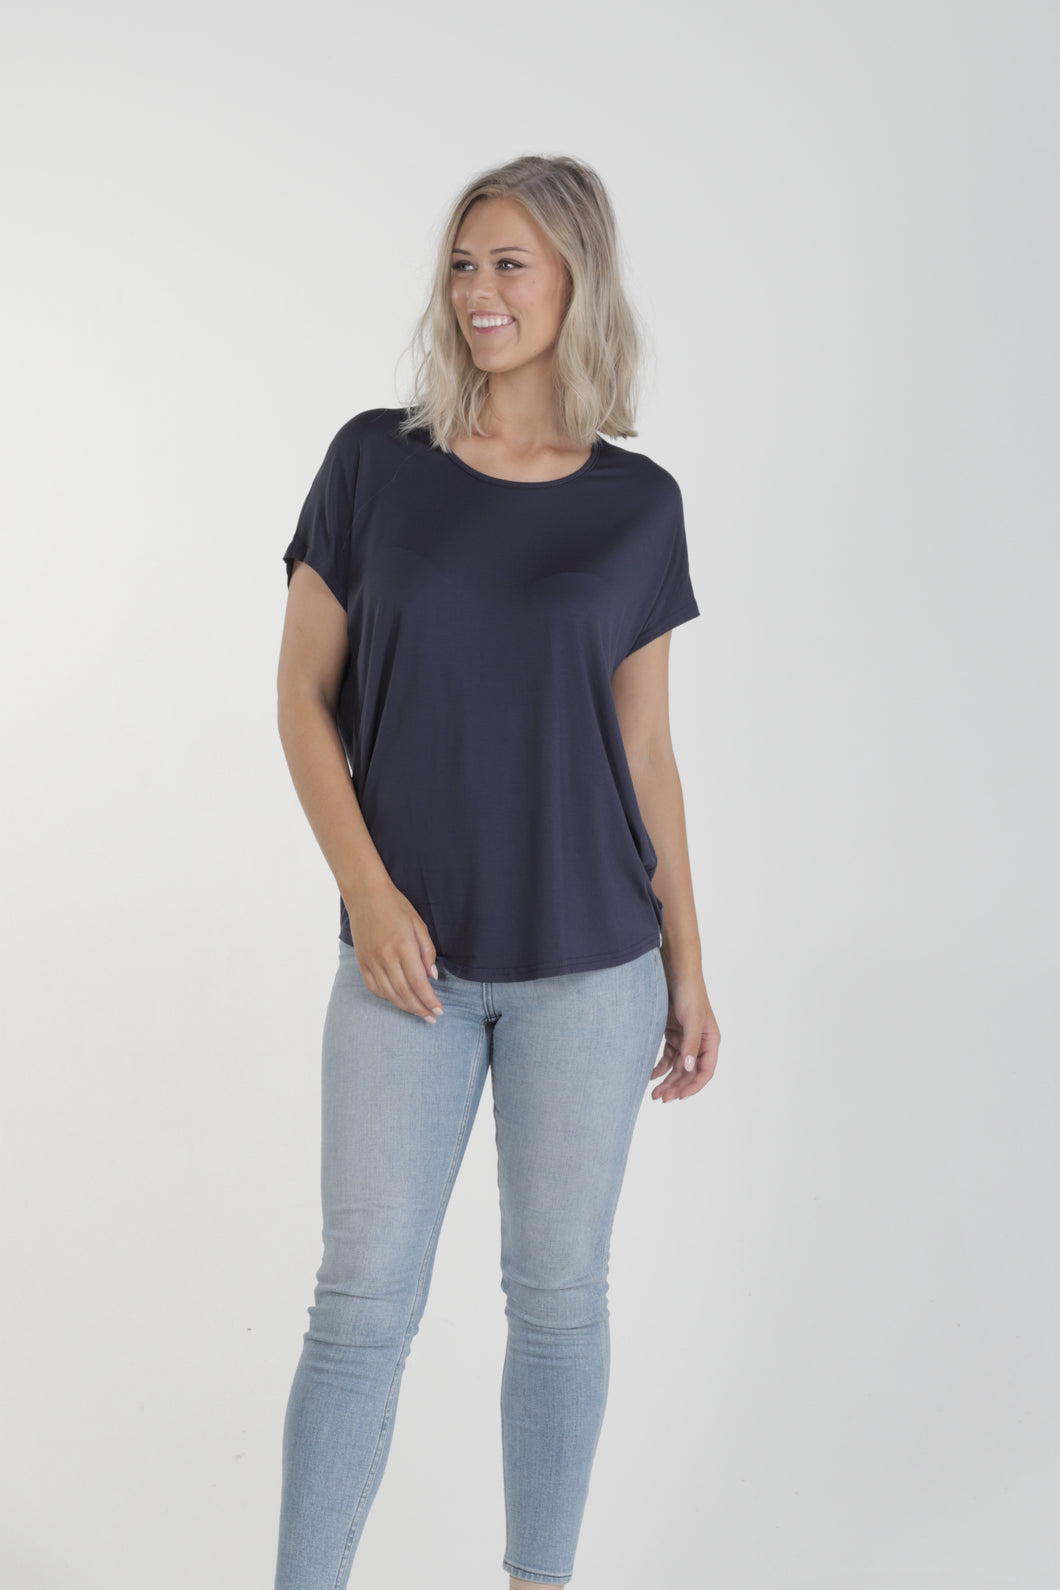 Relaxed Fit Batwing Bamboo Tee - Navy